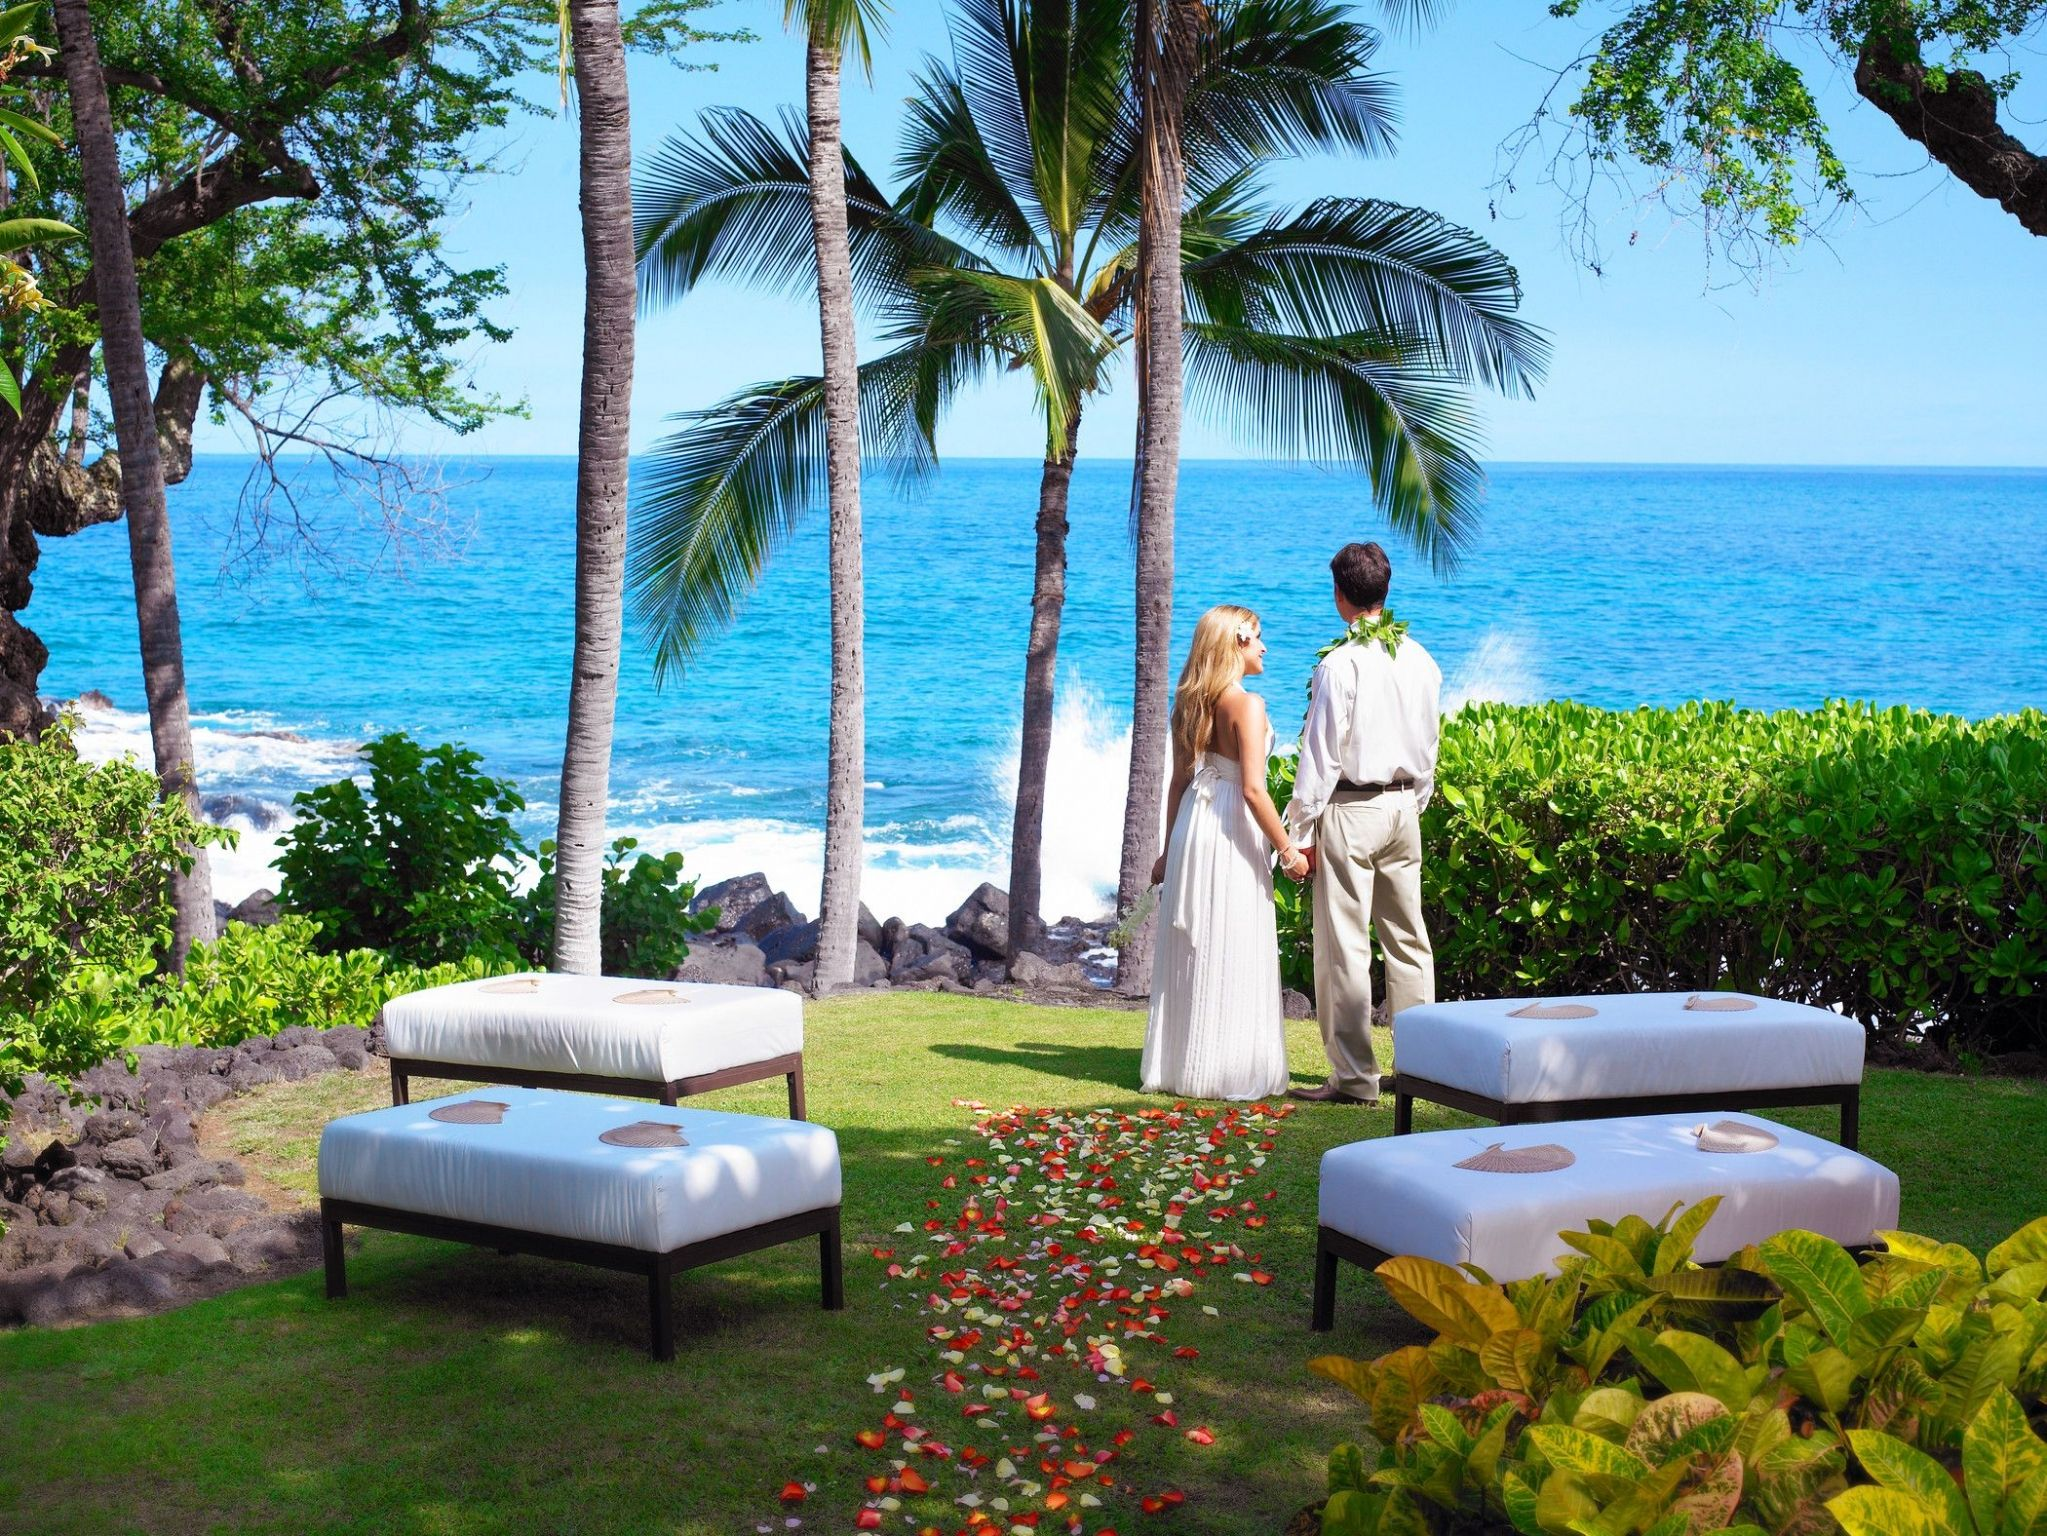 Kona Oceanfront Wedding Resorts - The Bayside Overlook